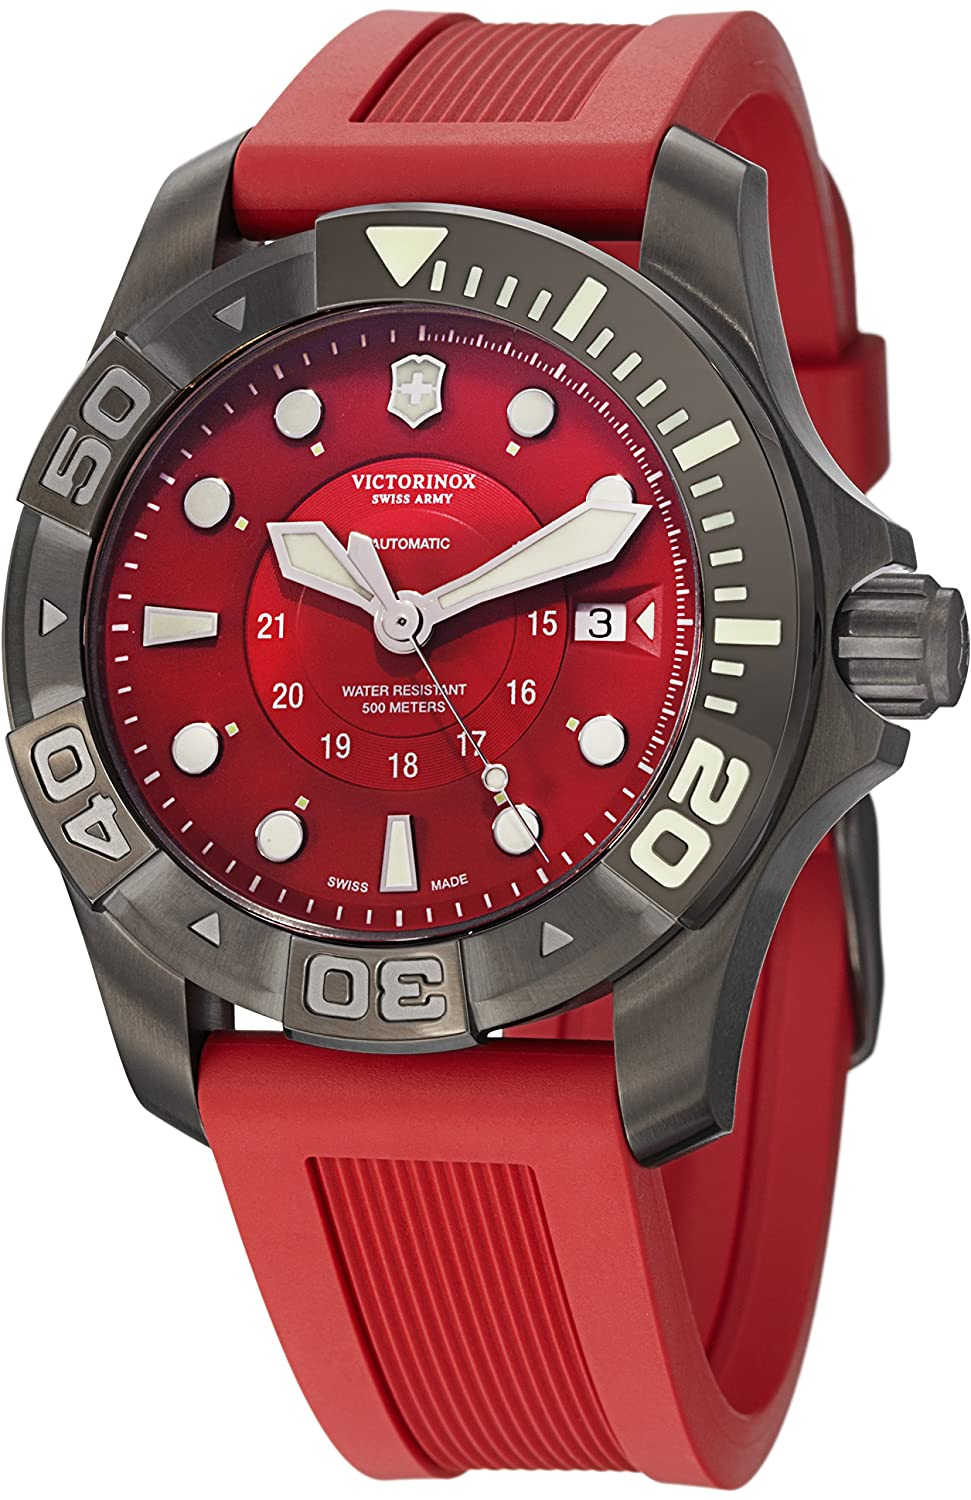 master i designs divemaster western myself interested me black got dive collection ice this were of in my number one watches introduced is the brand img victorinox model watch that notable